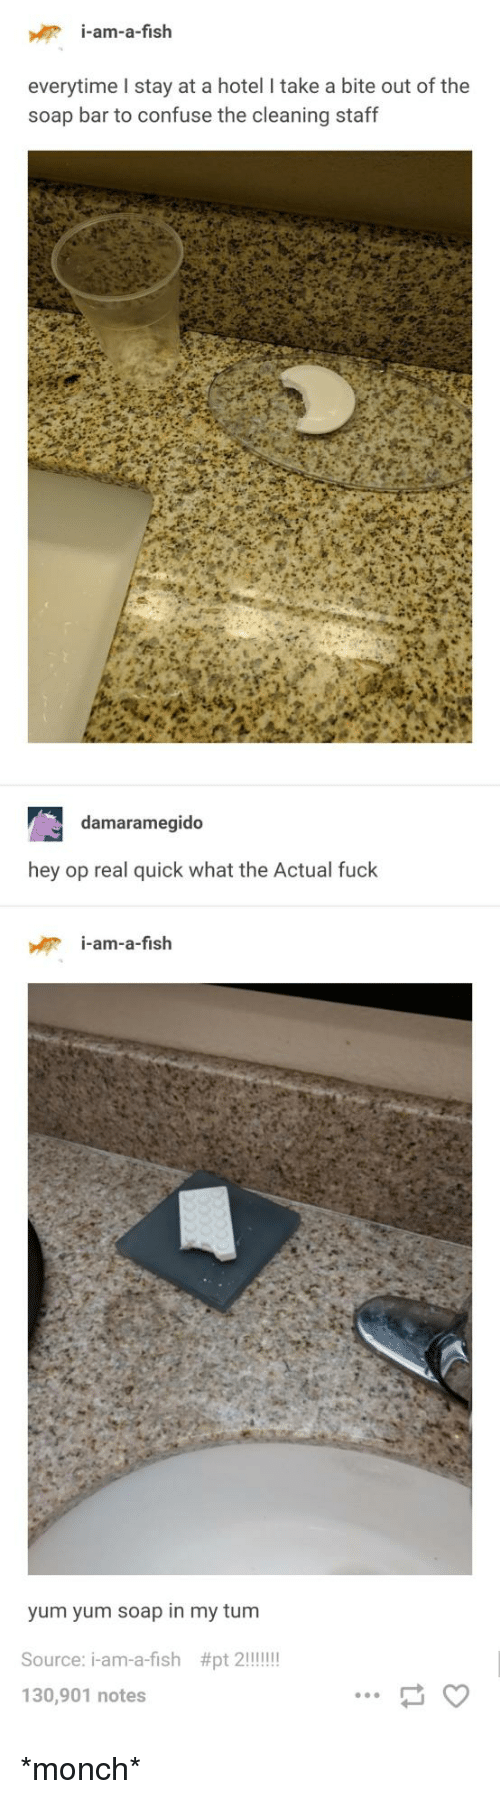 Fish, Fuck, and Hotel: i-am-a-fish  everytime l stay at a hotel I take a bite out of the  soap bar to confuse the cleaning staff  damaramegido  hey op real quick what the Actual fuck  i-am-a-fish  yum yum soap in my tum  130,901 notes *monch*